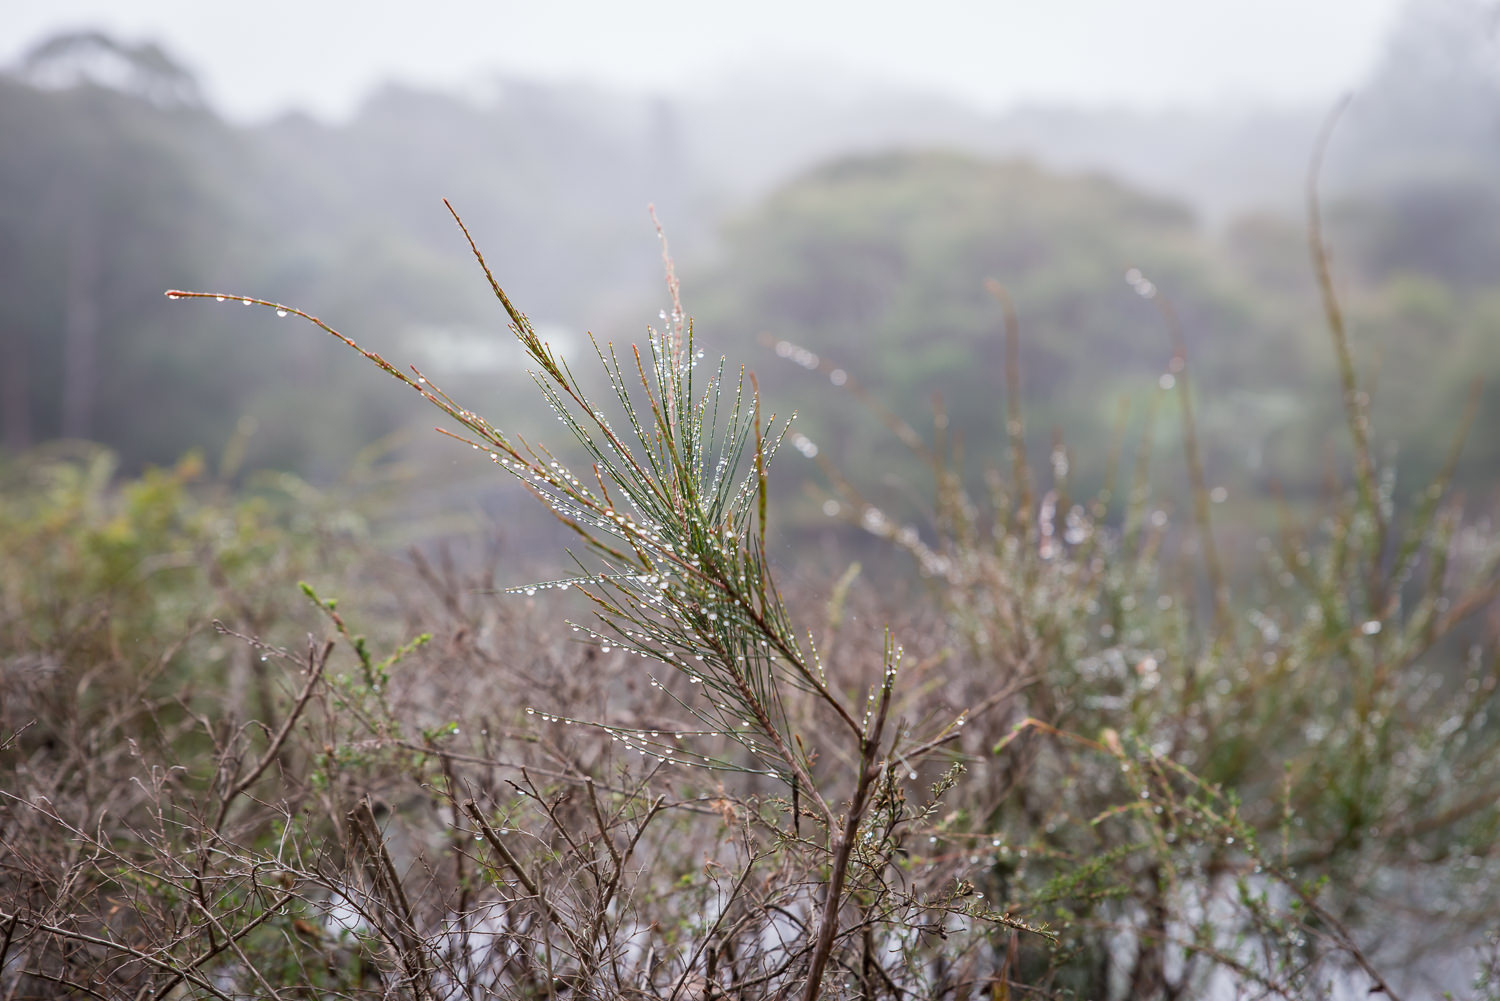 I was meant to be taking photos of the alligators in the lake but got distracted by the water droplets on the plants! You can see the misty morning in the background